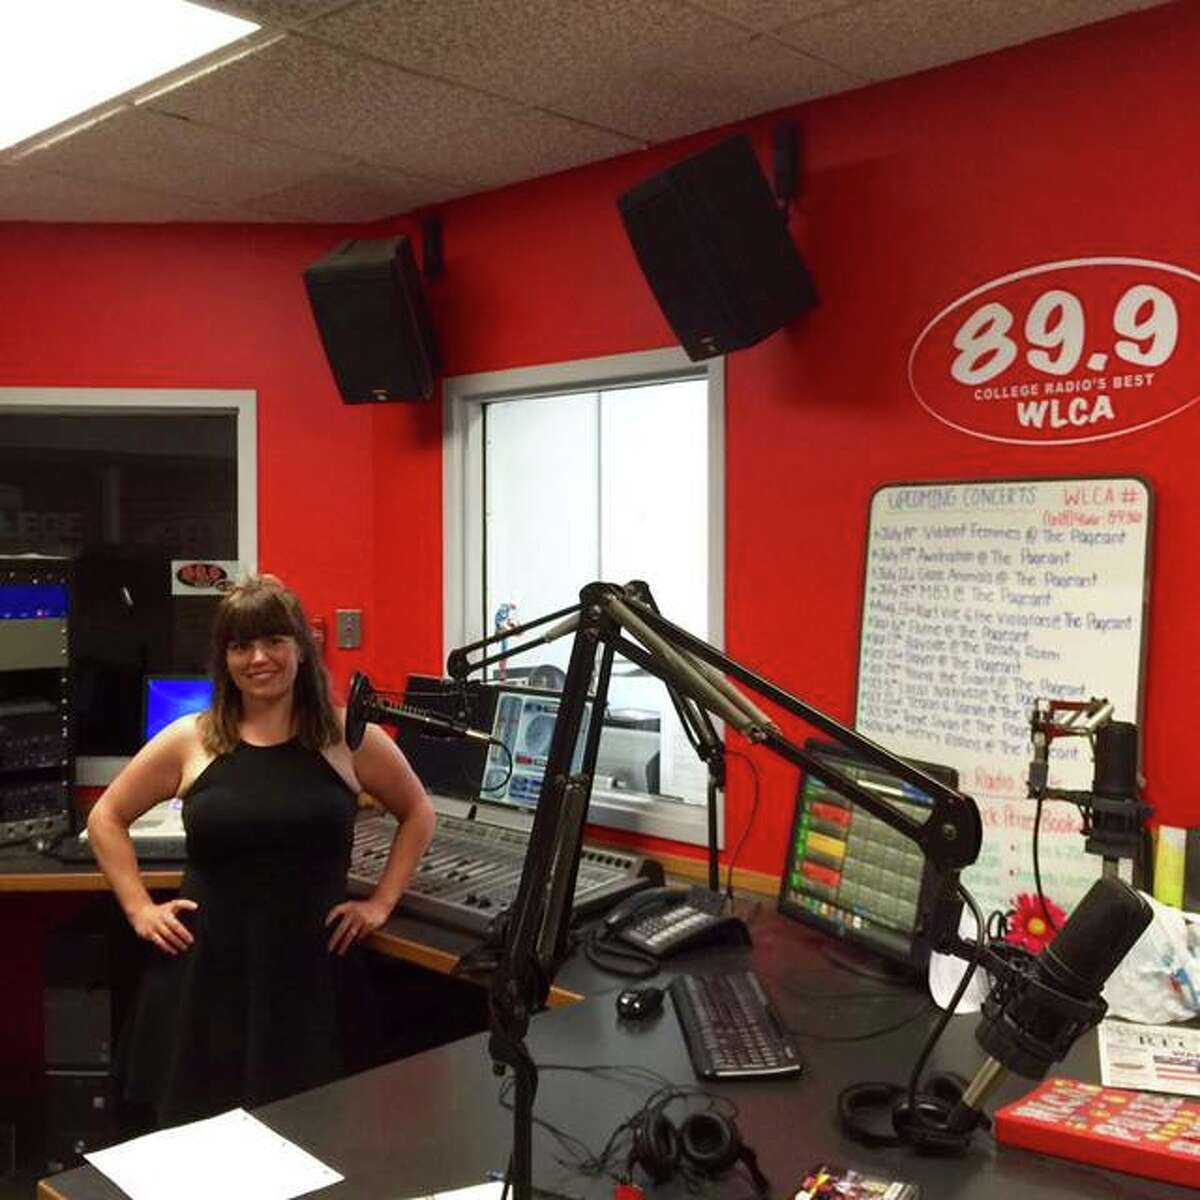 Amanda Valentine visits the WLCA Studio during a reunion held on L&C's Godfrey Campus in July 2016.